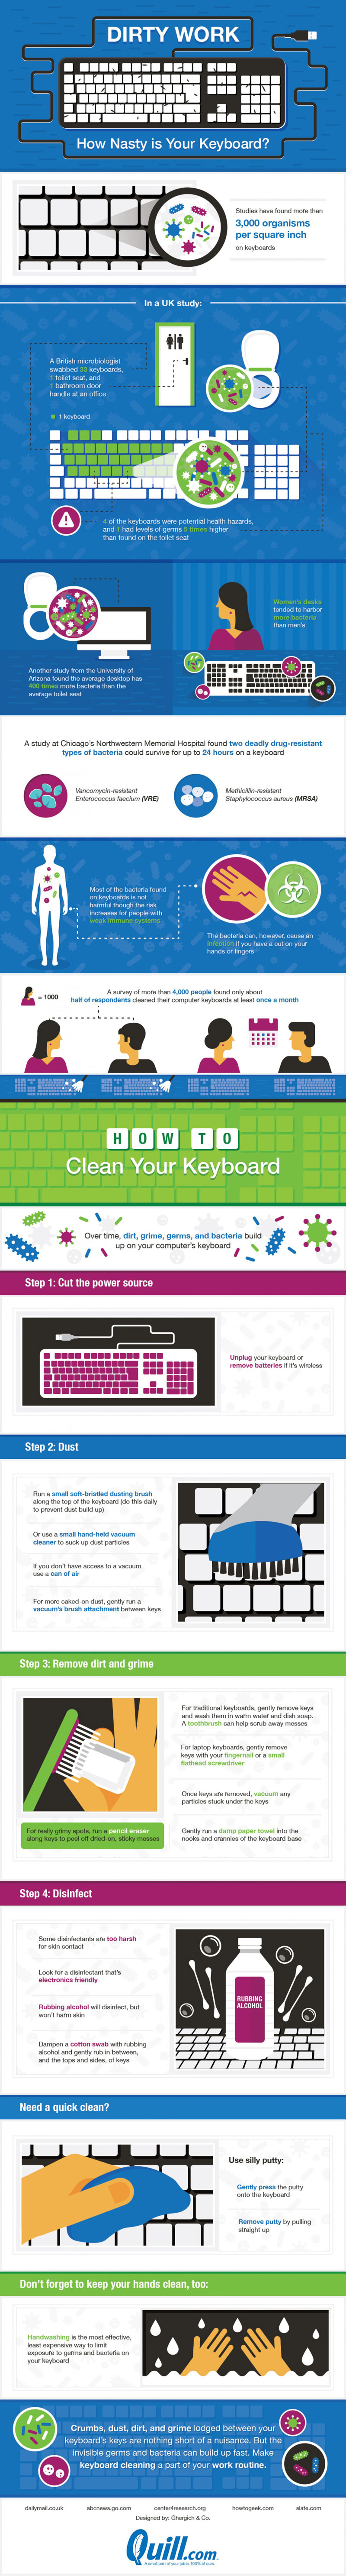 dirty-work-how-nasty-is-your-keyboard_563beb720a2d8_w1500